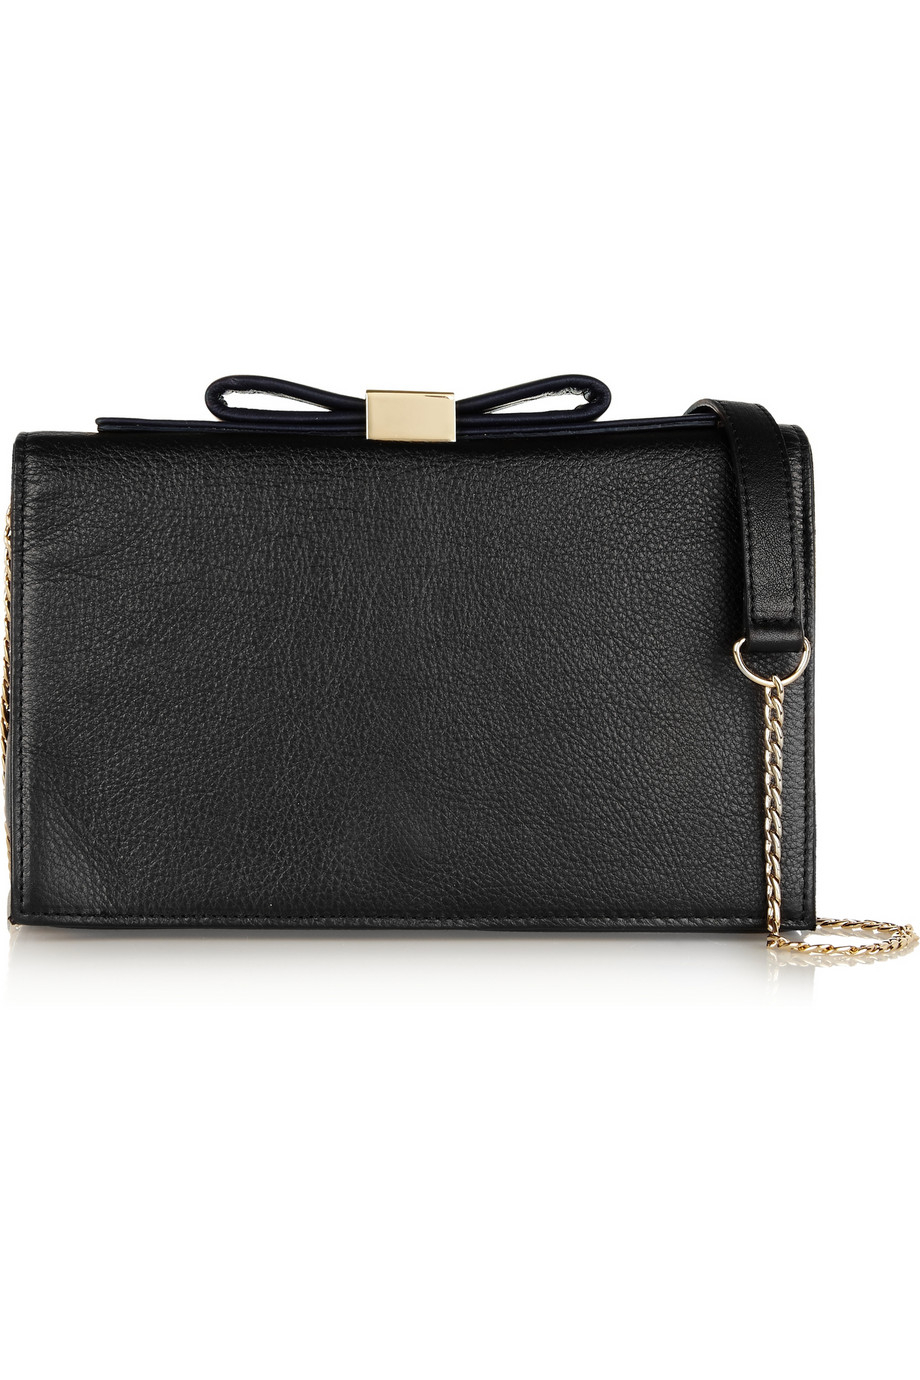 See by chlo�� Nora Bow-Embellished Textured-Leather Clutch in Black ...